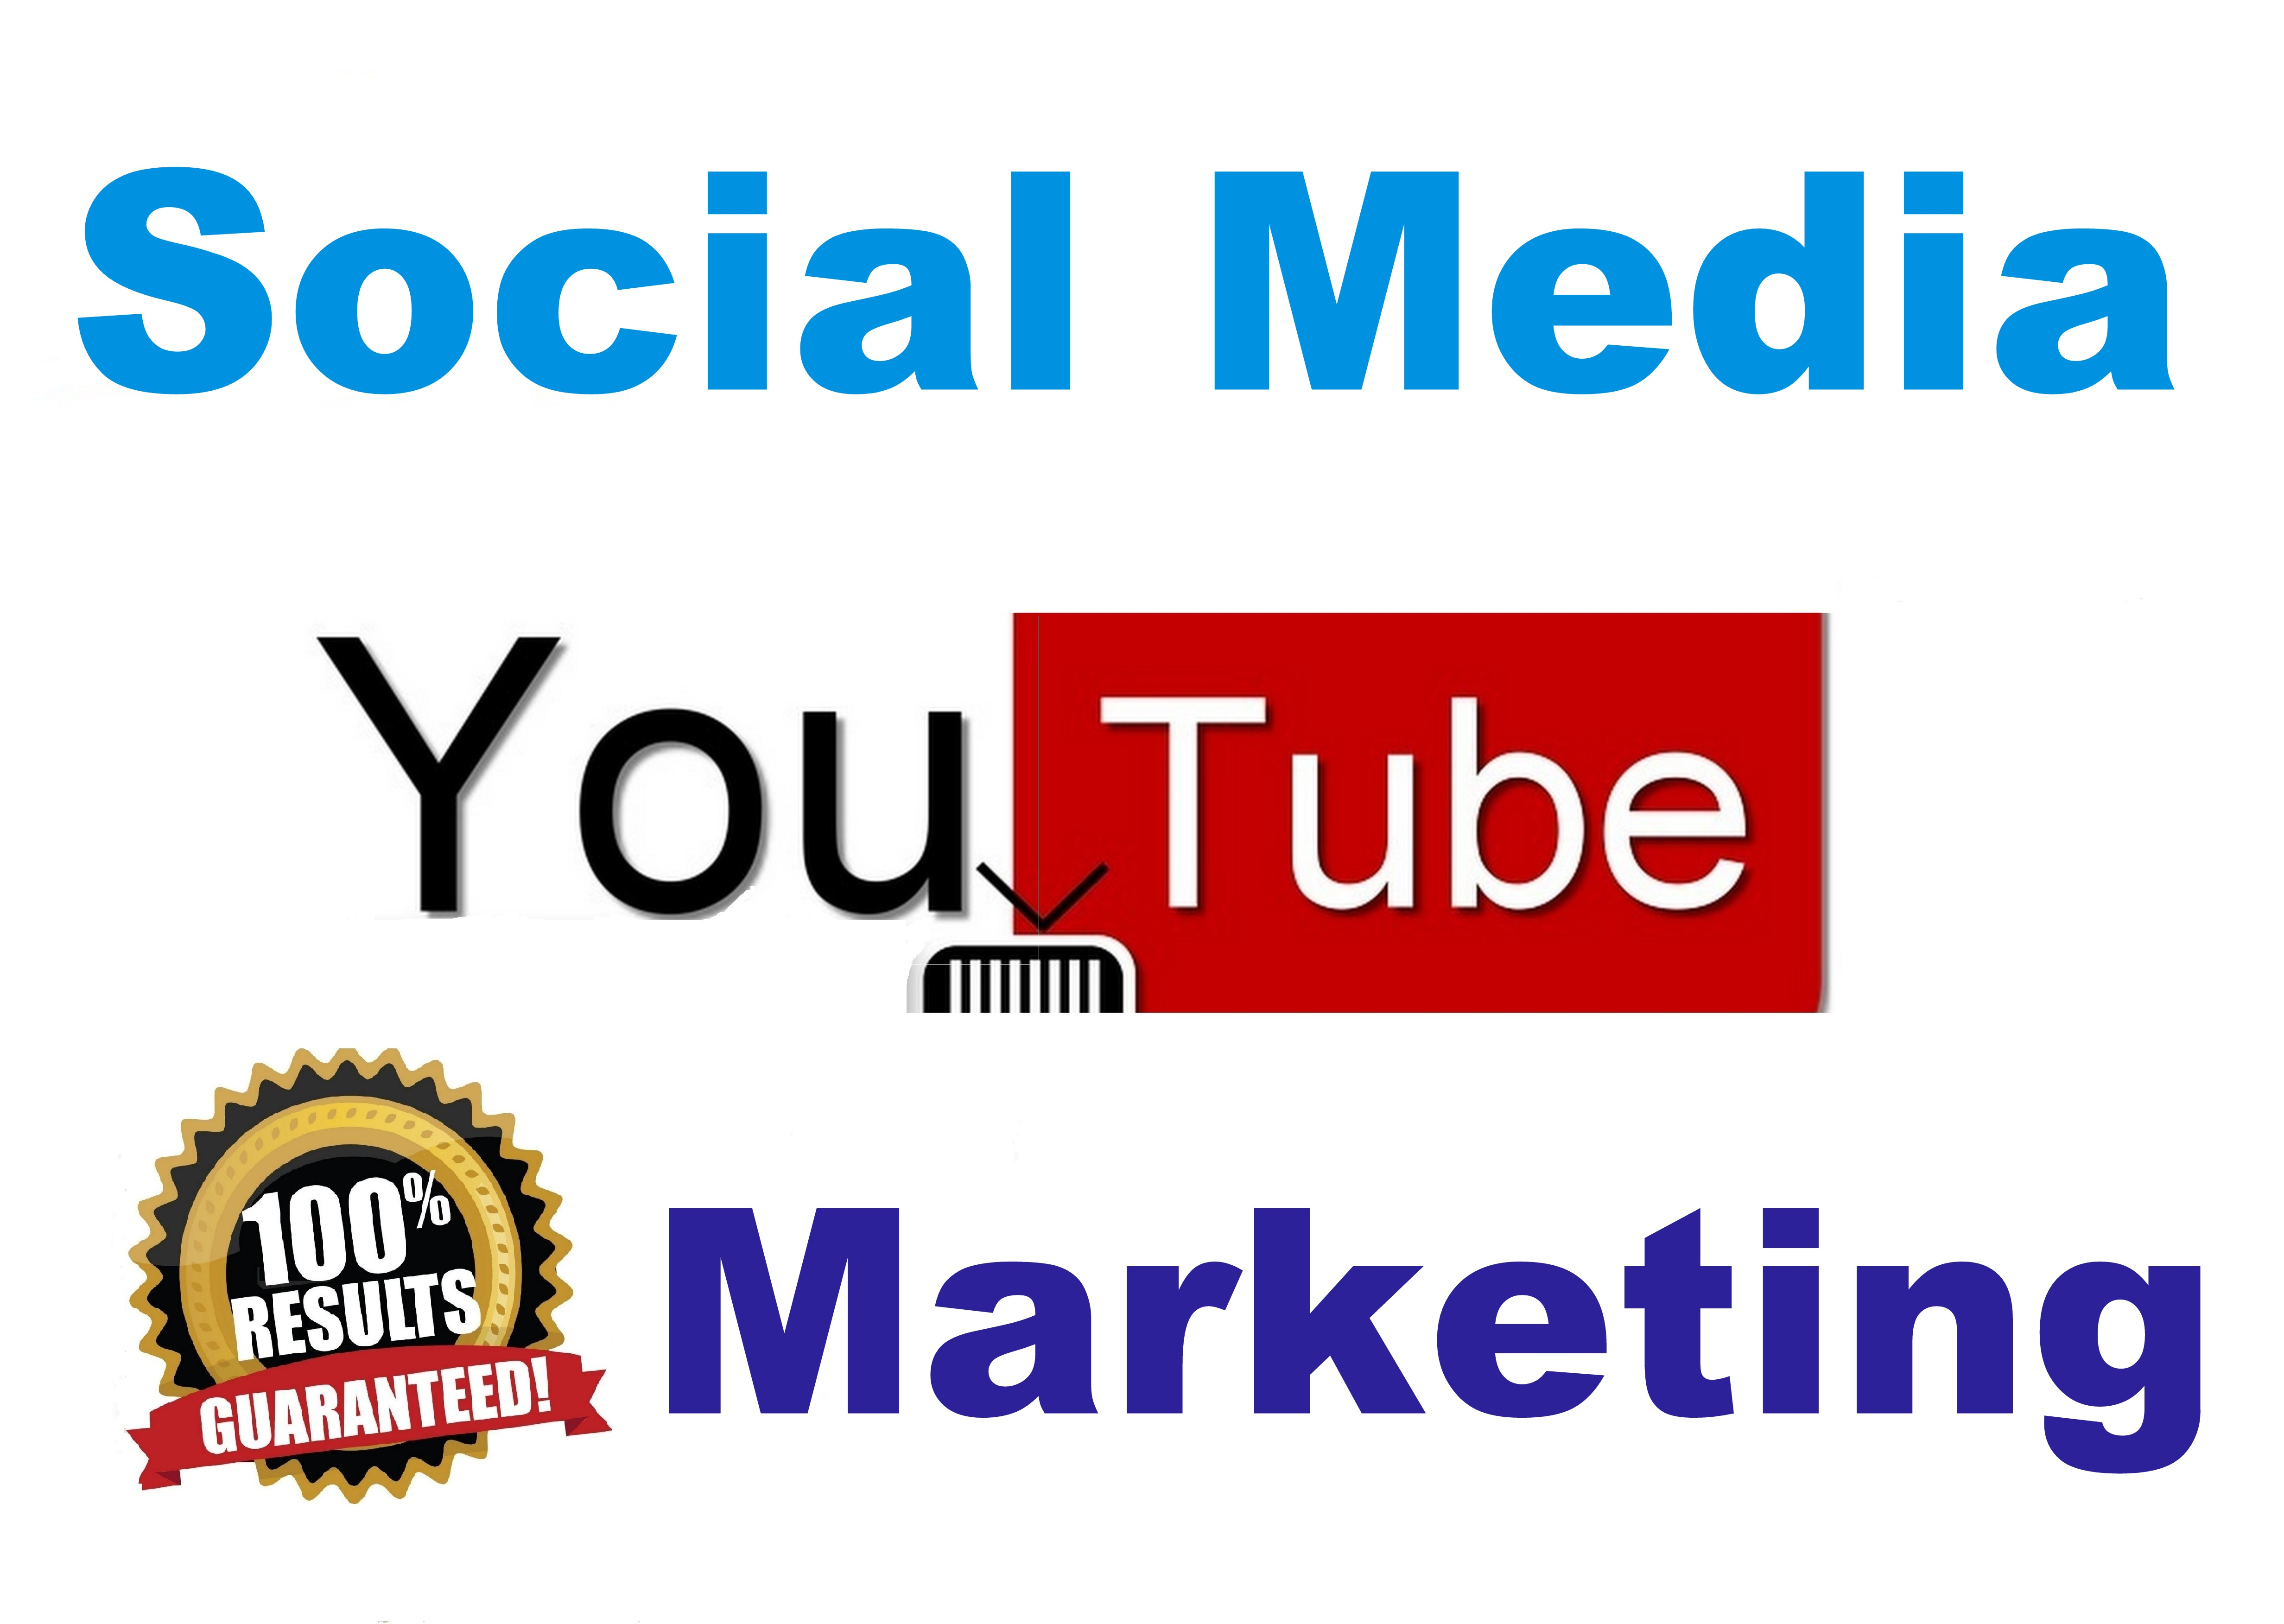 1000-do-Social-bookmarking-website-and-video-Quality-build